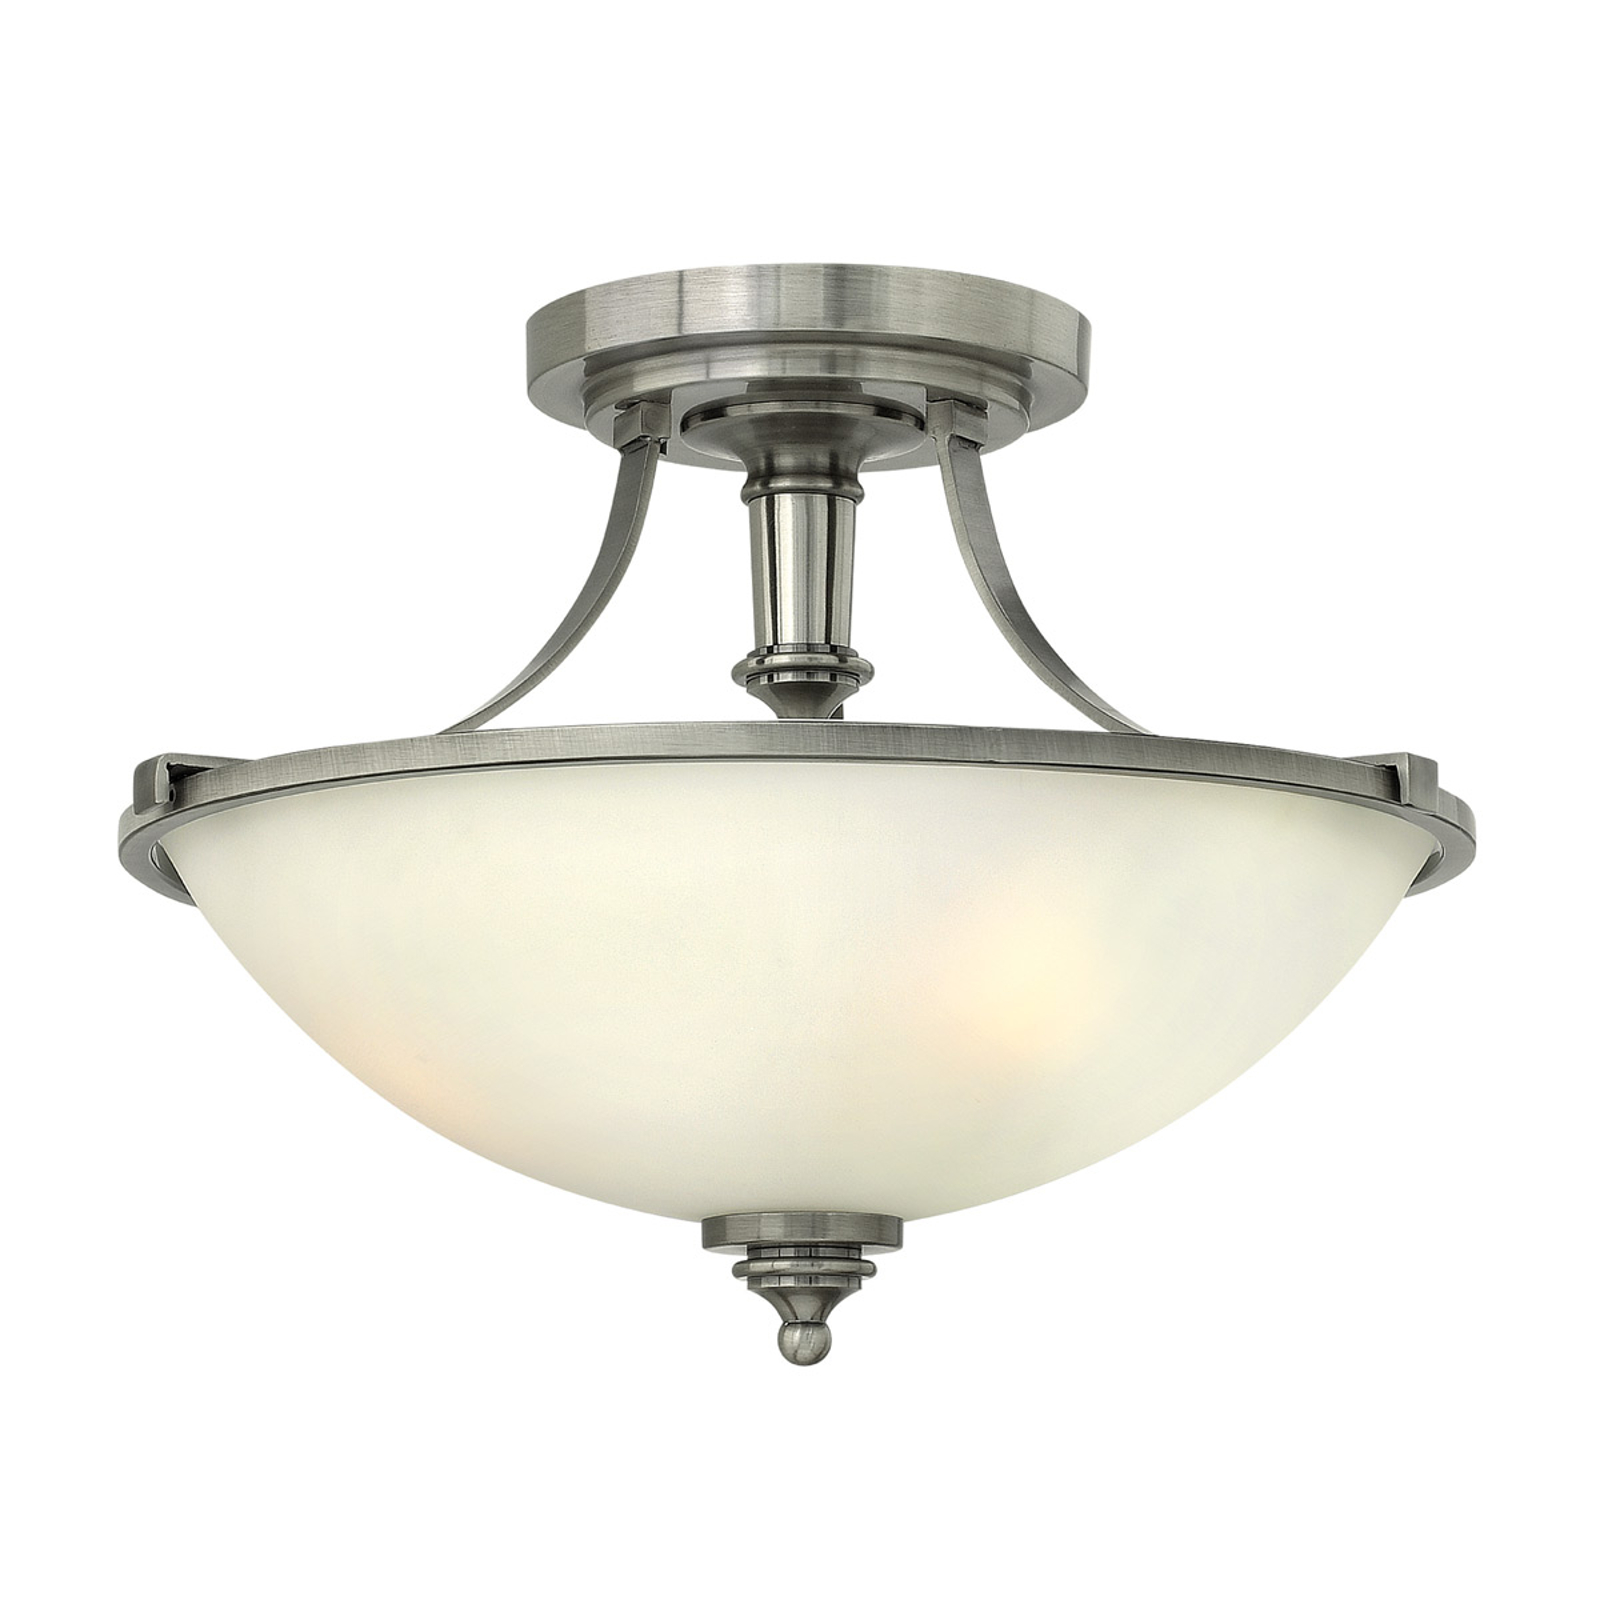 Truman Ceiling Light Antique Nickel_3048111_1